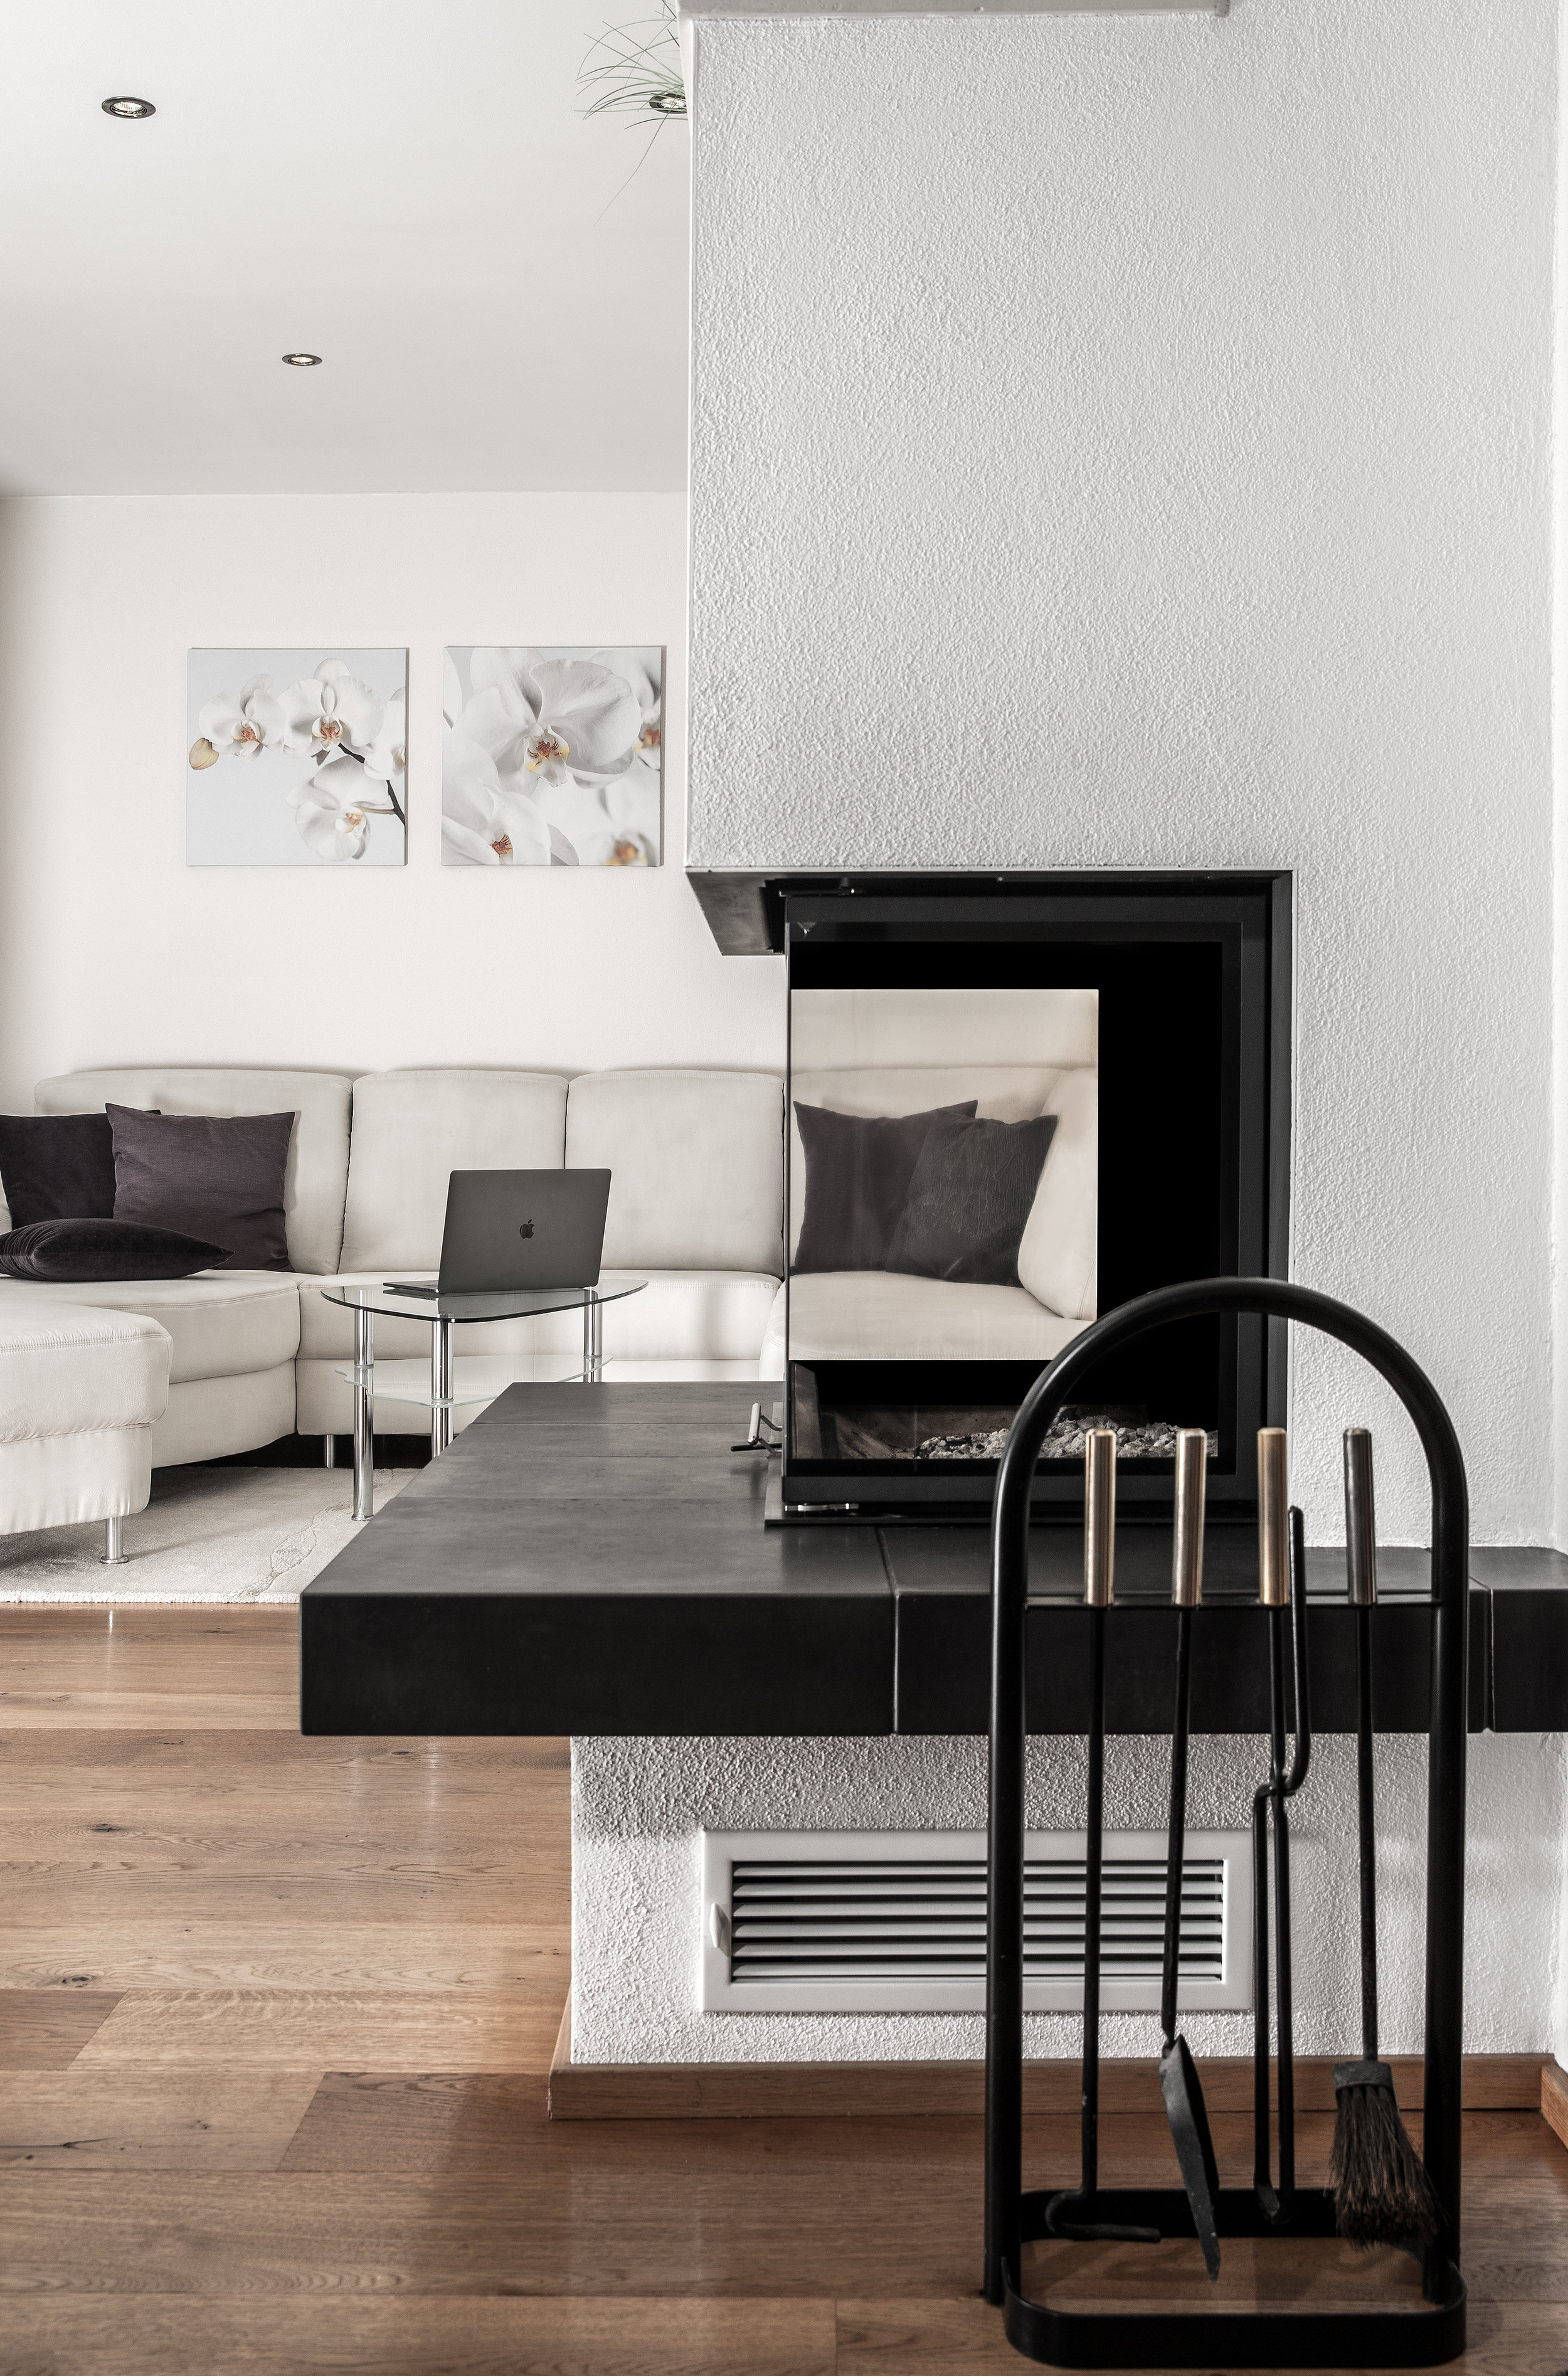 3d visual from an online interior design open plan living and dining scheme. The project focused on Scandinavian and contemporary influences with a touch of masculinity and an appreciation for vacant space as much as filled space.